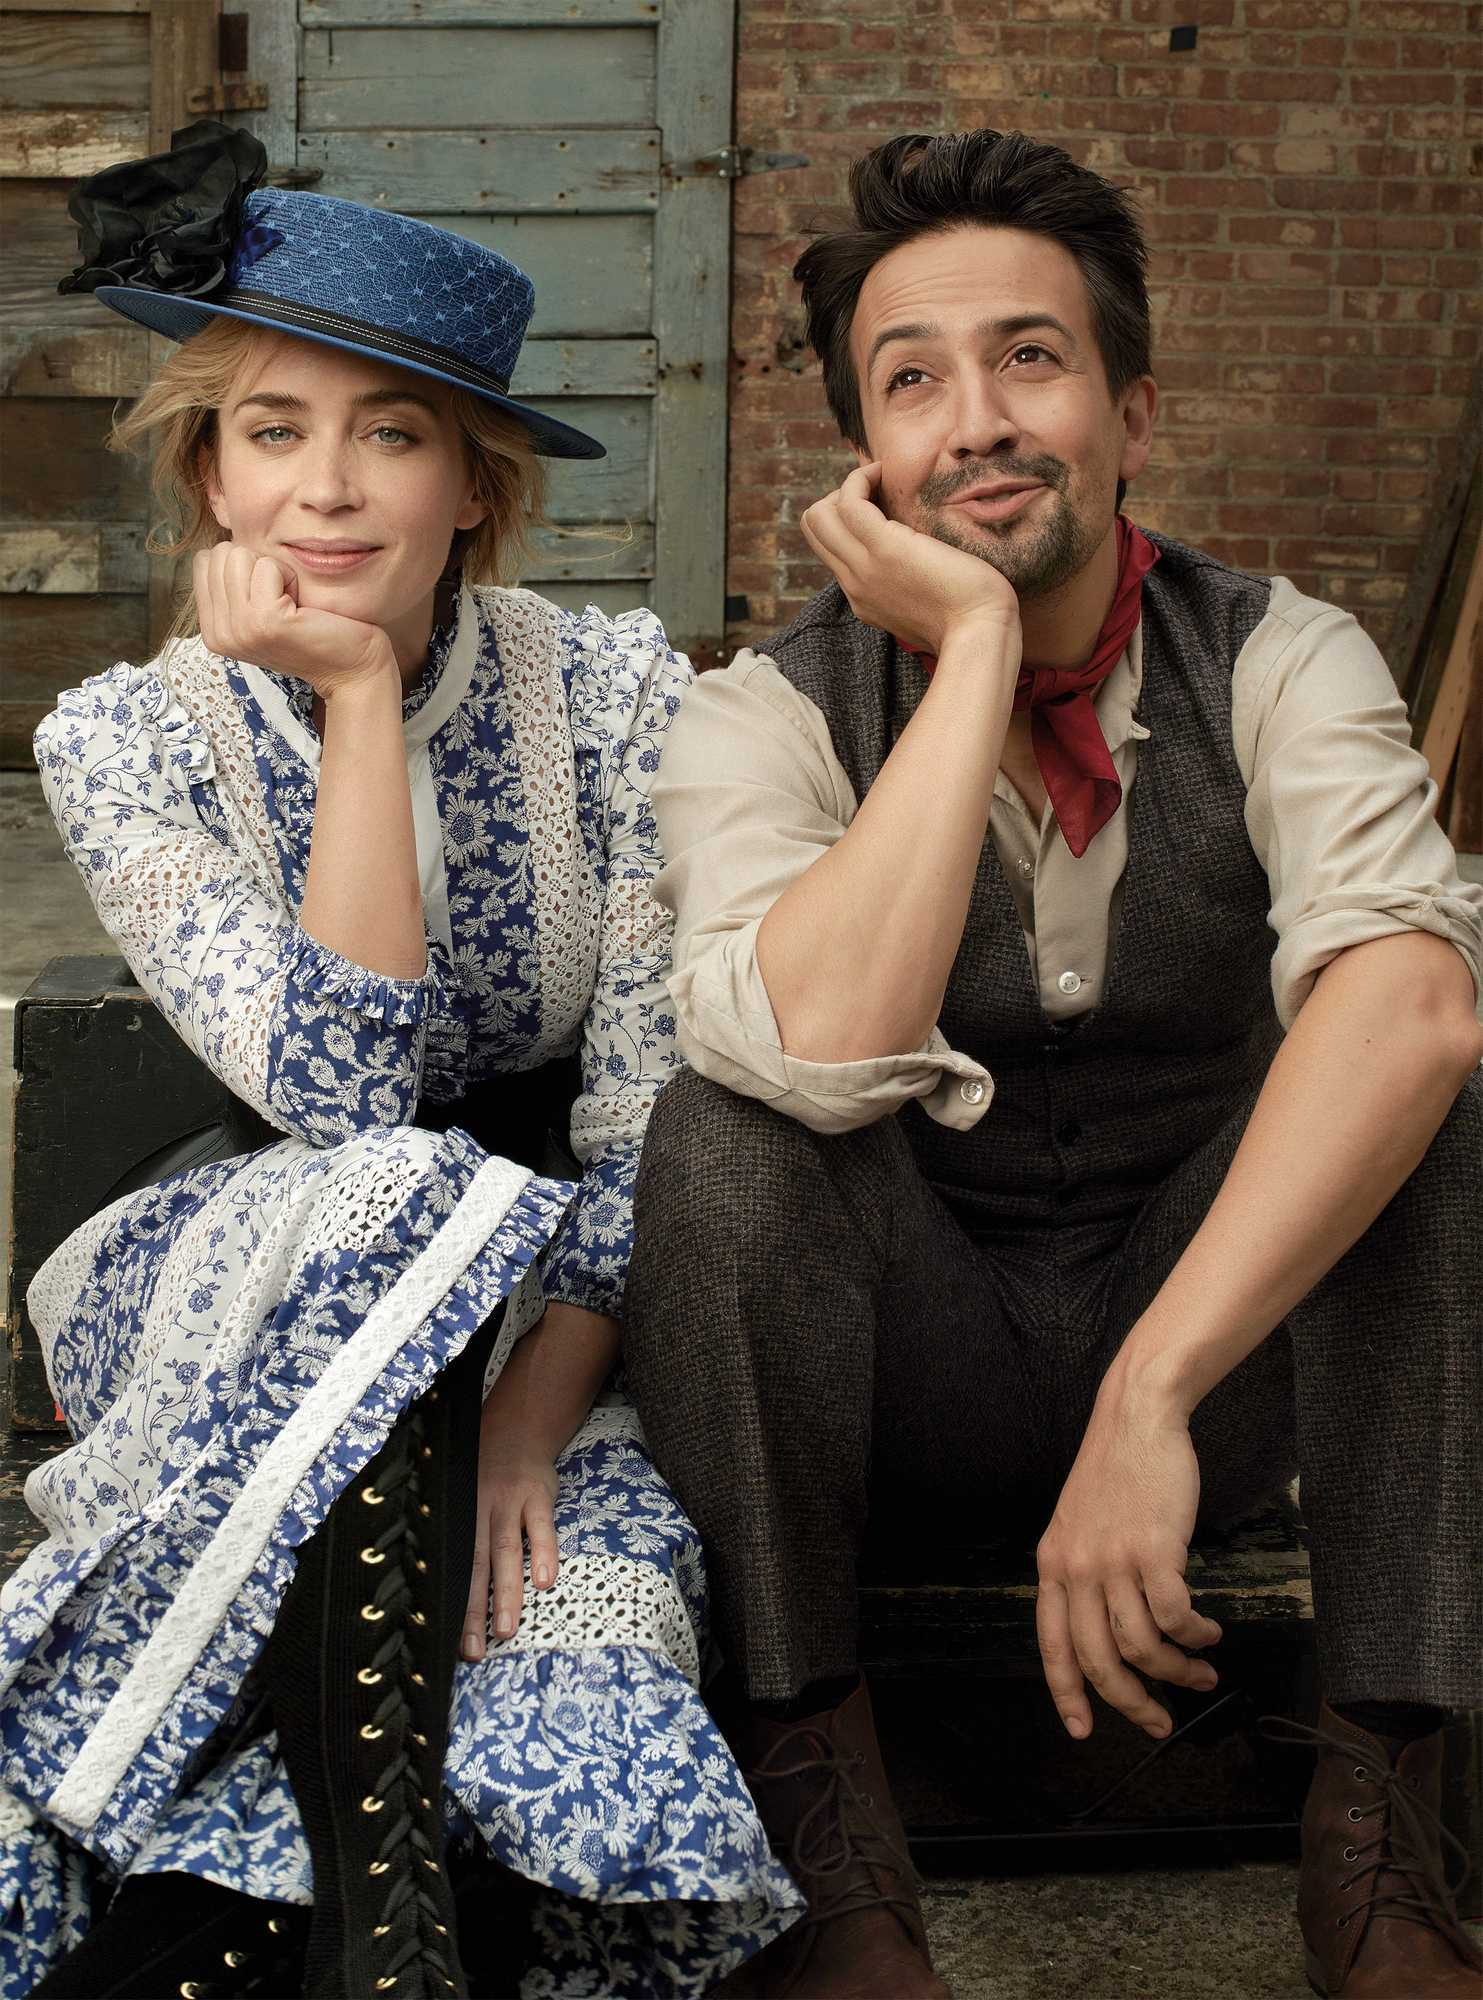 Emily-Blunt-Lin-Manuel-Miranda-photographed-by-Annie-Leibovitz-for-Vogue-December-201887851576_emily-04.jpg